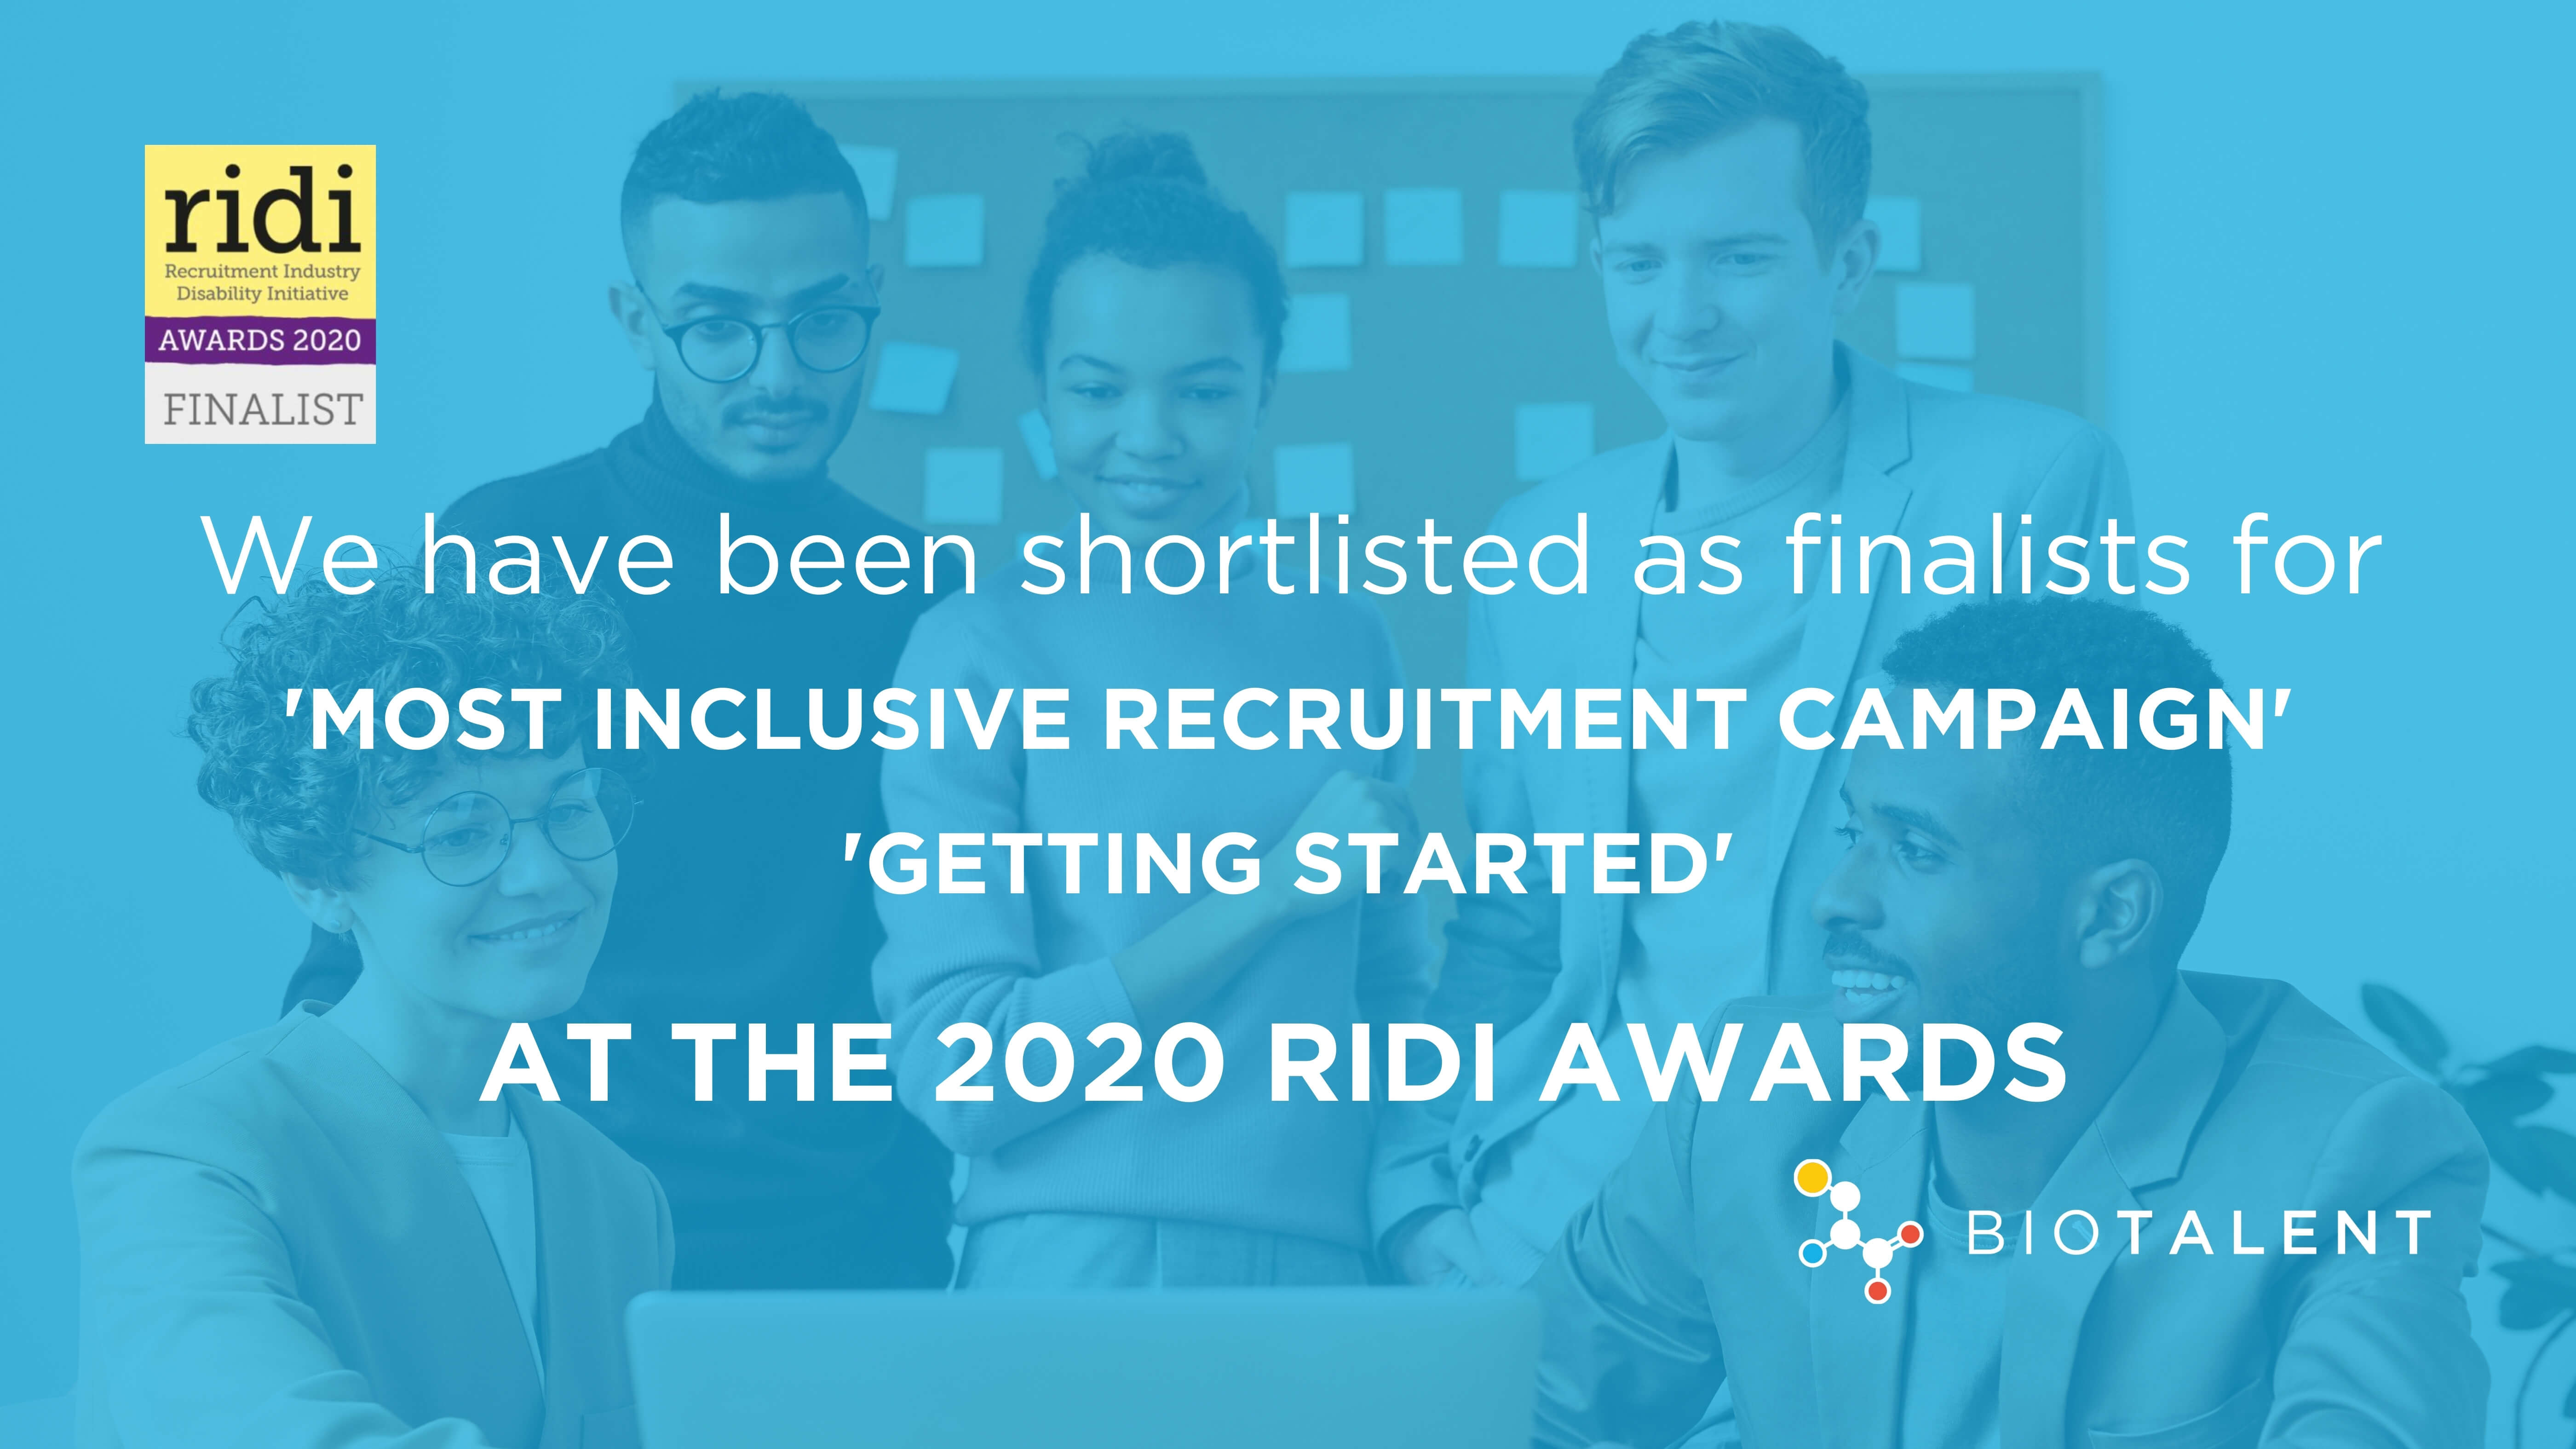 Shortlisted for the RIDI Awards 2020